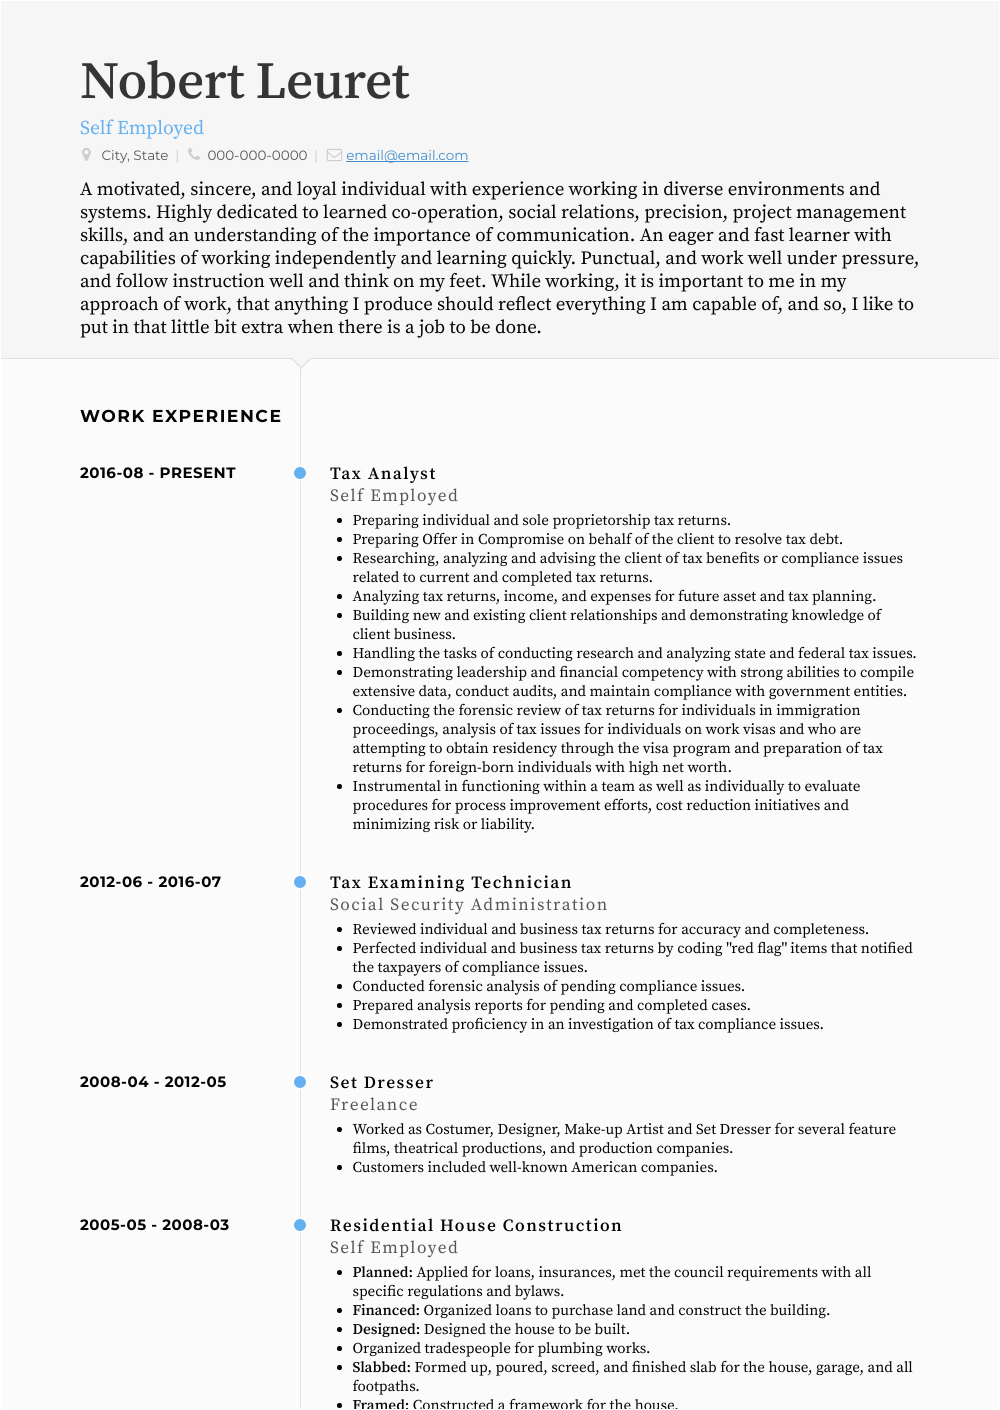 Sample Resume Of Self Employed Person Resumes for Self Employed Mryn ism